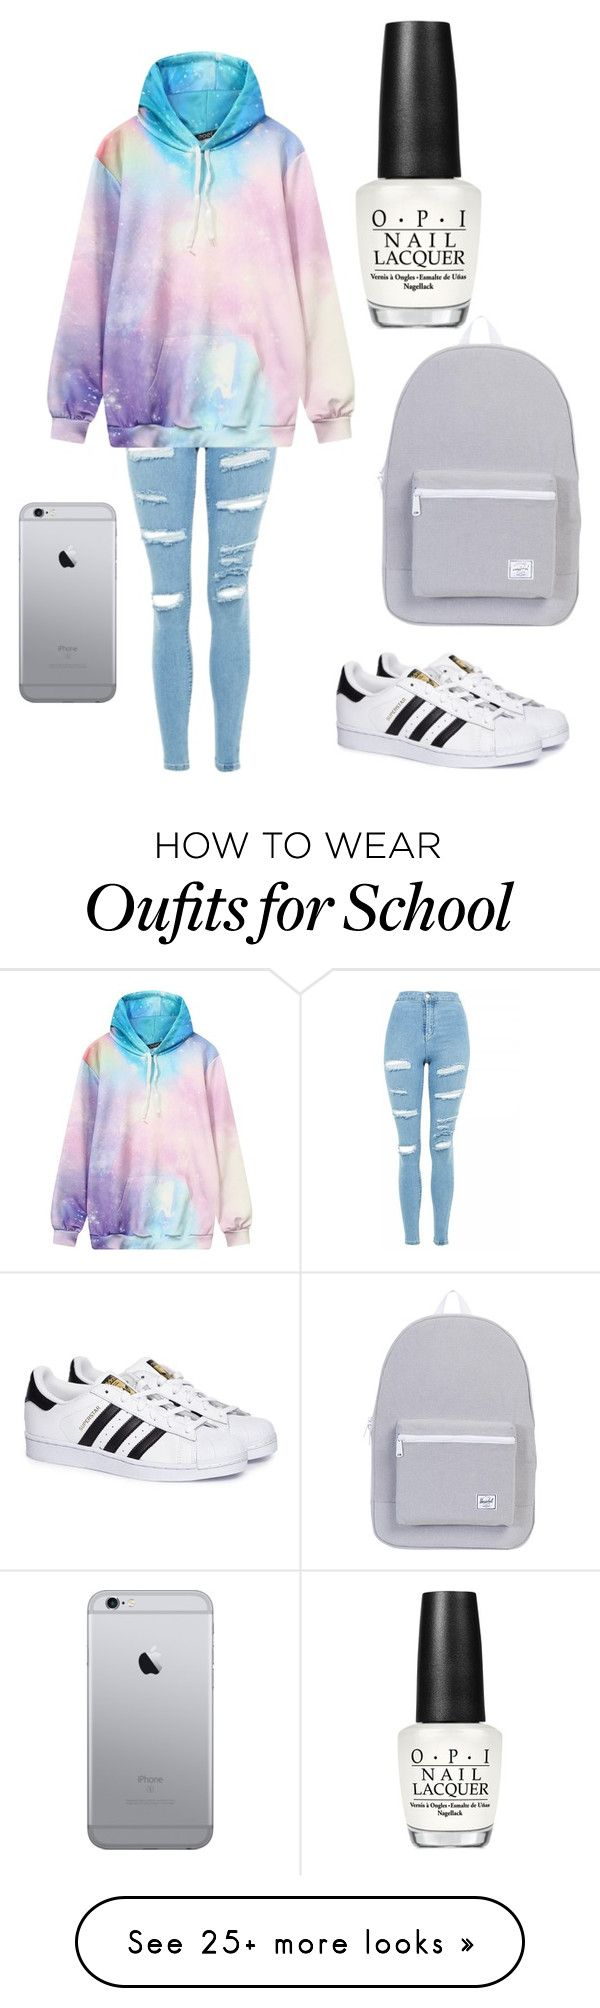 """‍♀️"" by pinguinfan on Polyvore featuring adidas, Topshop, OPI and Herschel Supply Co."